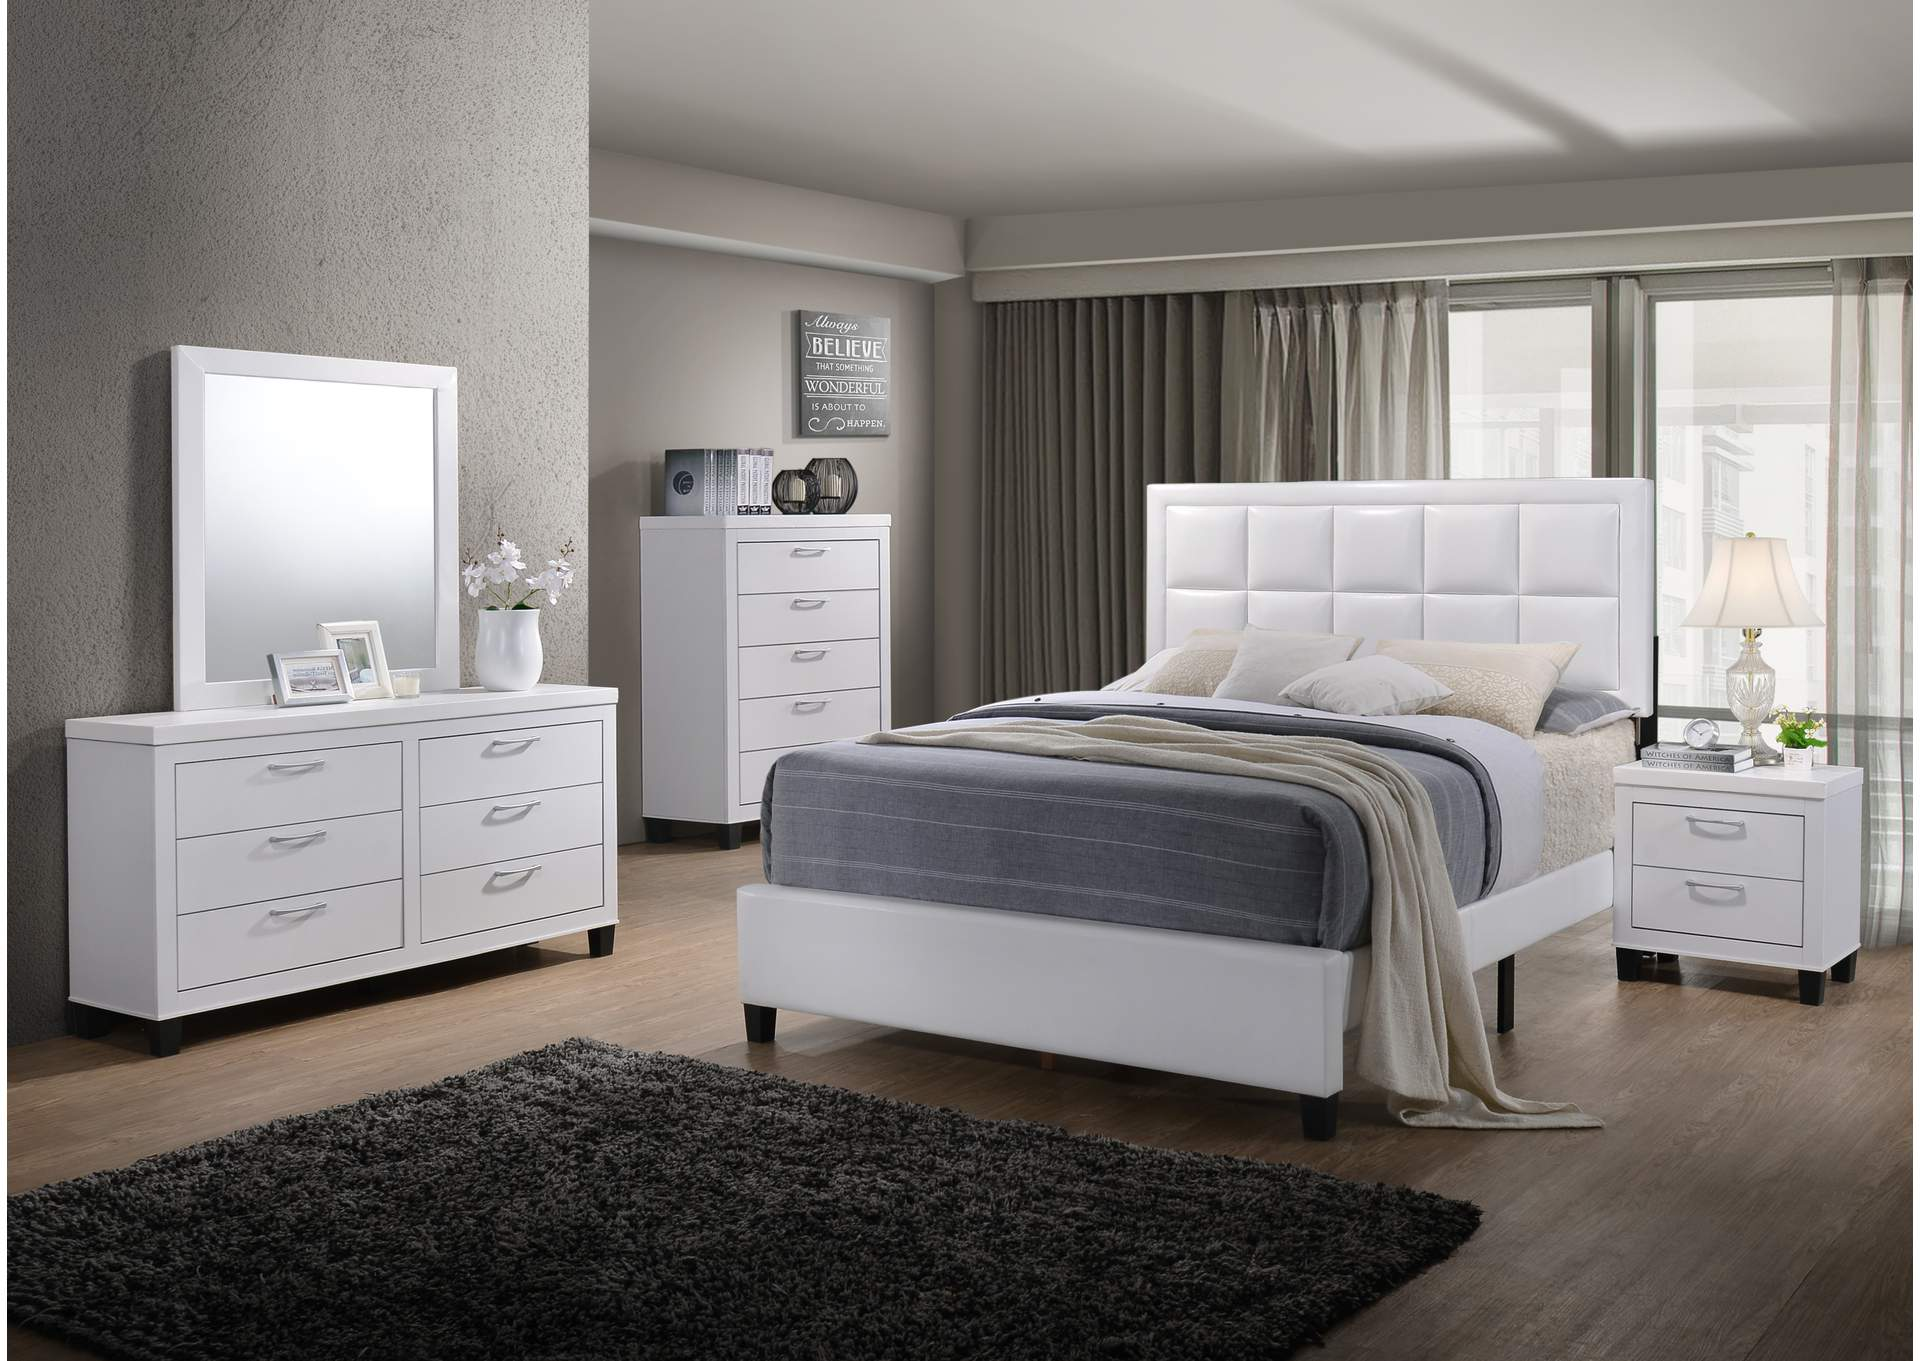 Culverbach White Panel Queen 6 Piece Bedroom Set W/ 2 Nightstand, Chest, Dresser & Mirror,Global Trading